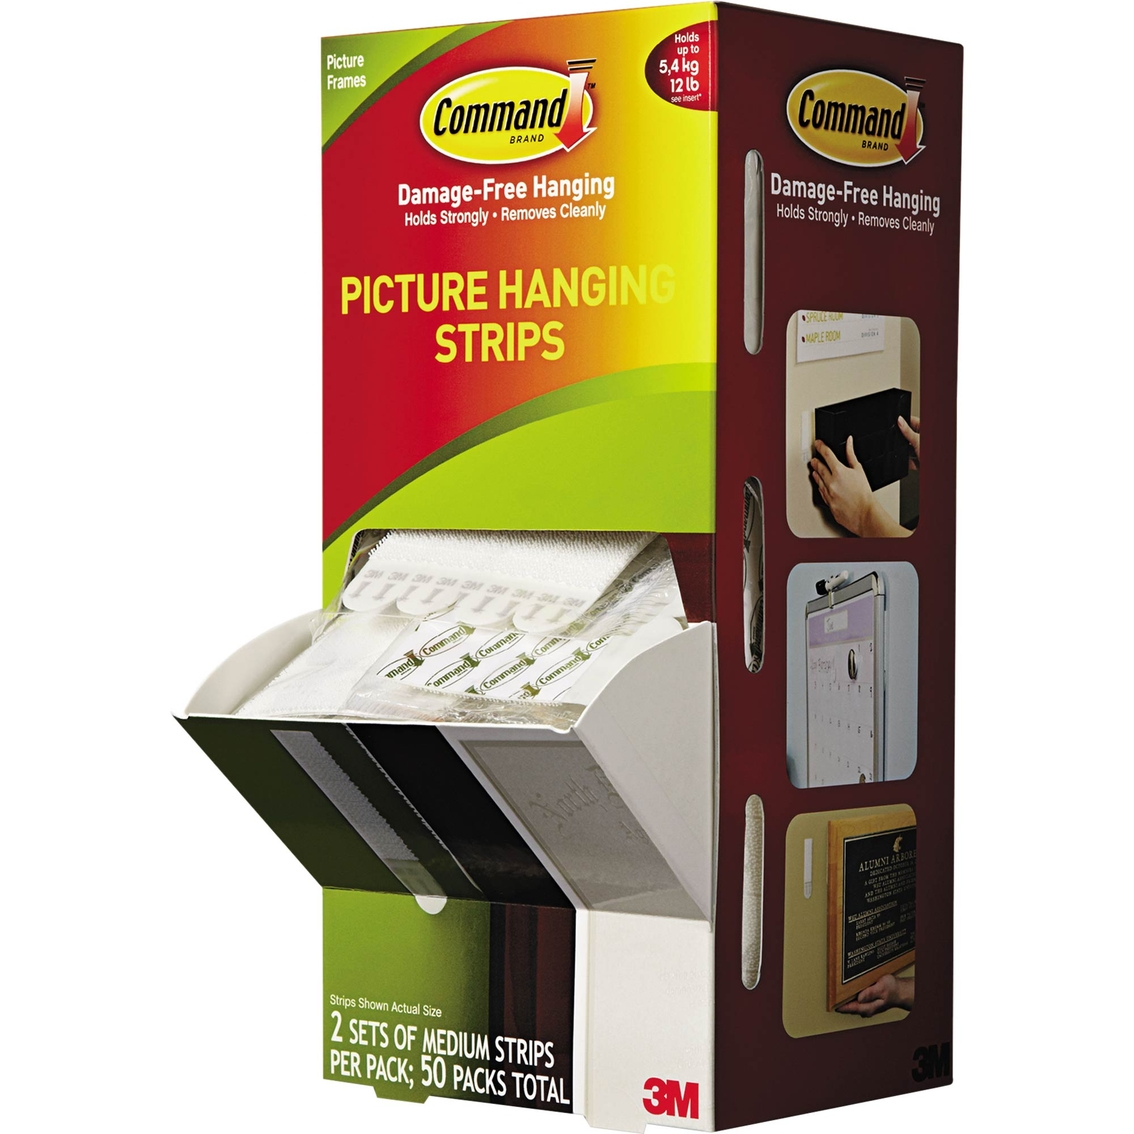 Nail Striping Tape Walmart: Command Picture Hanging Strips 50 Pk.